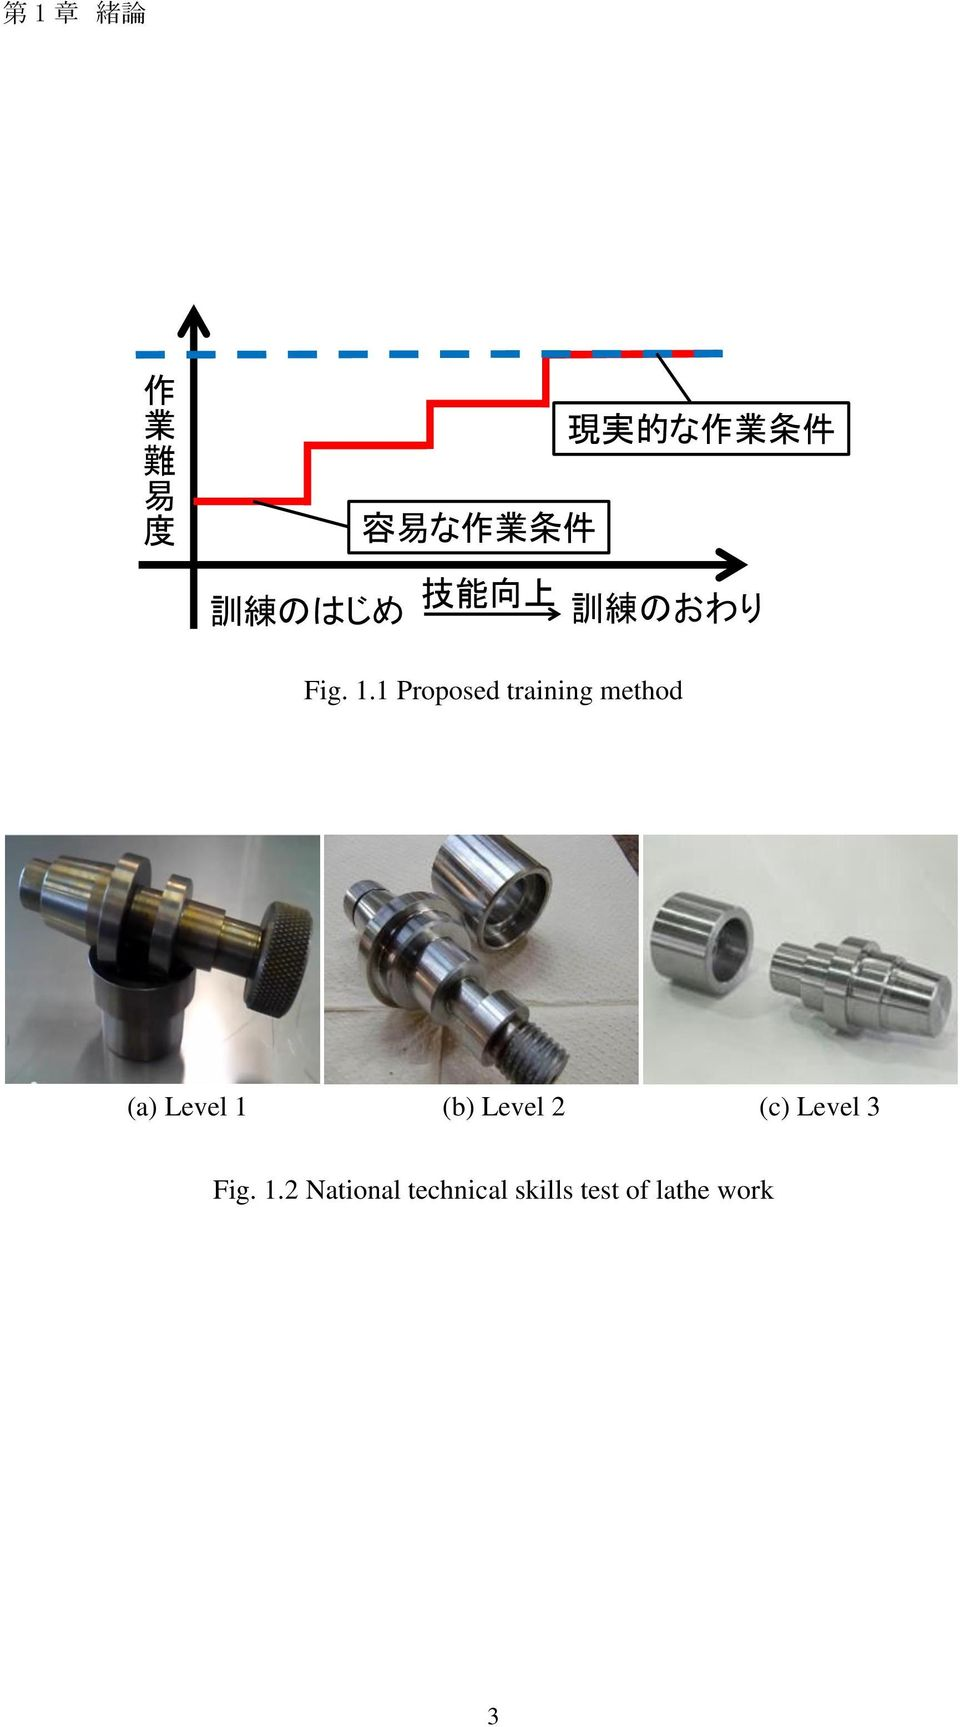 1 Proposed training method (a) Level 1 (b) Level 2